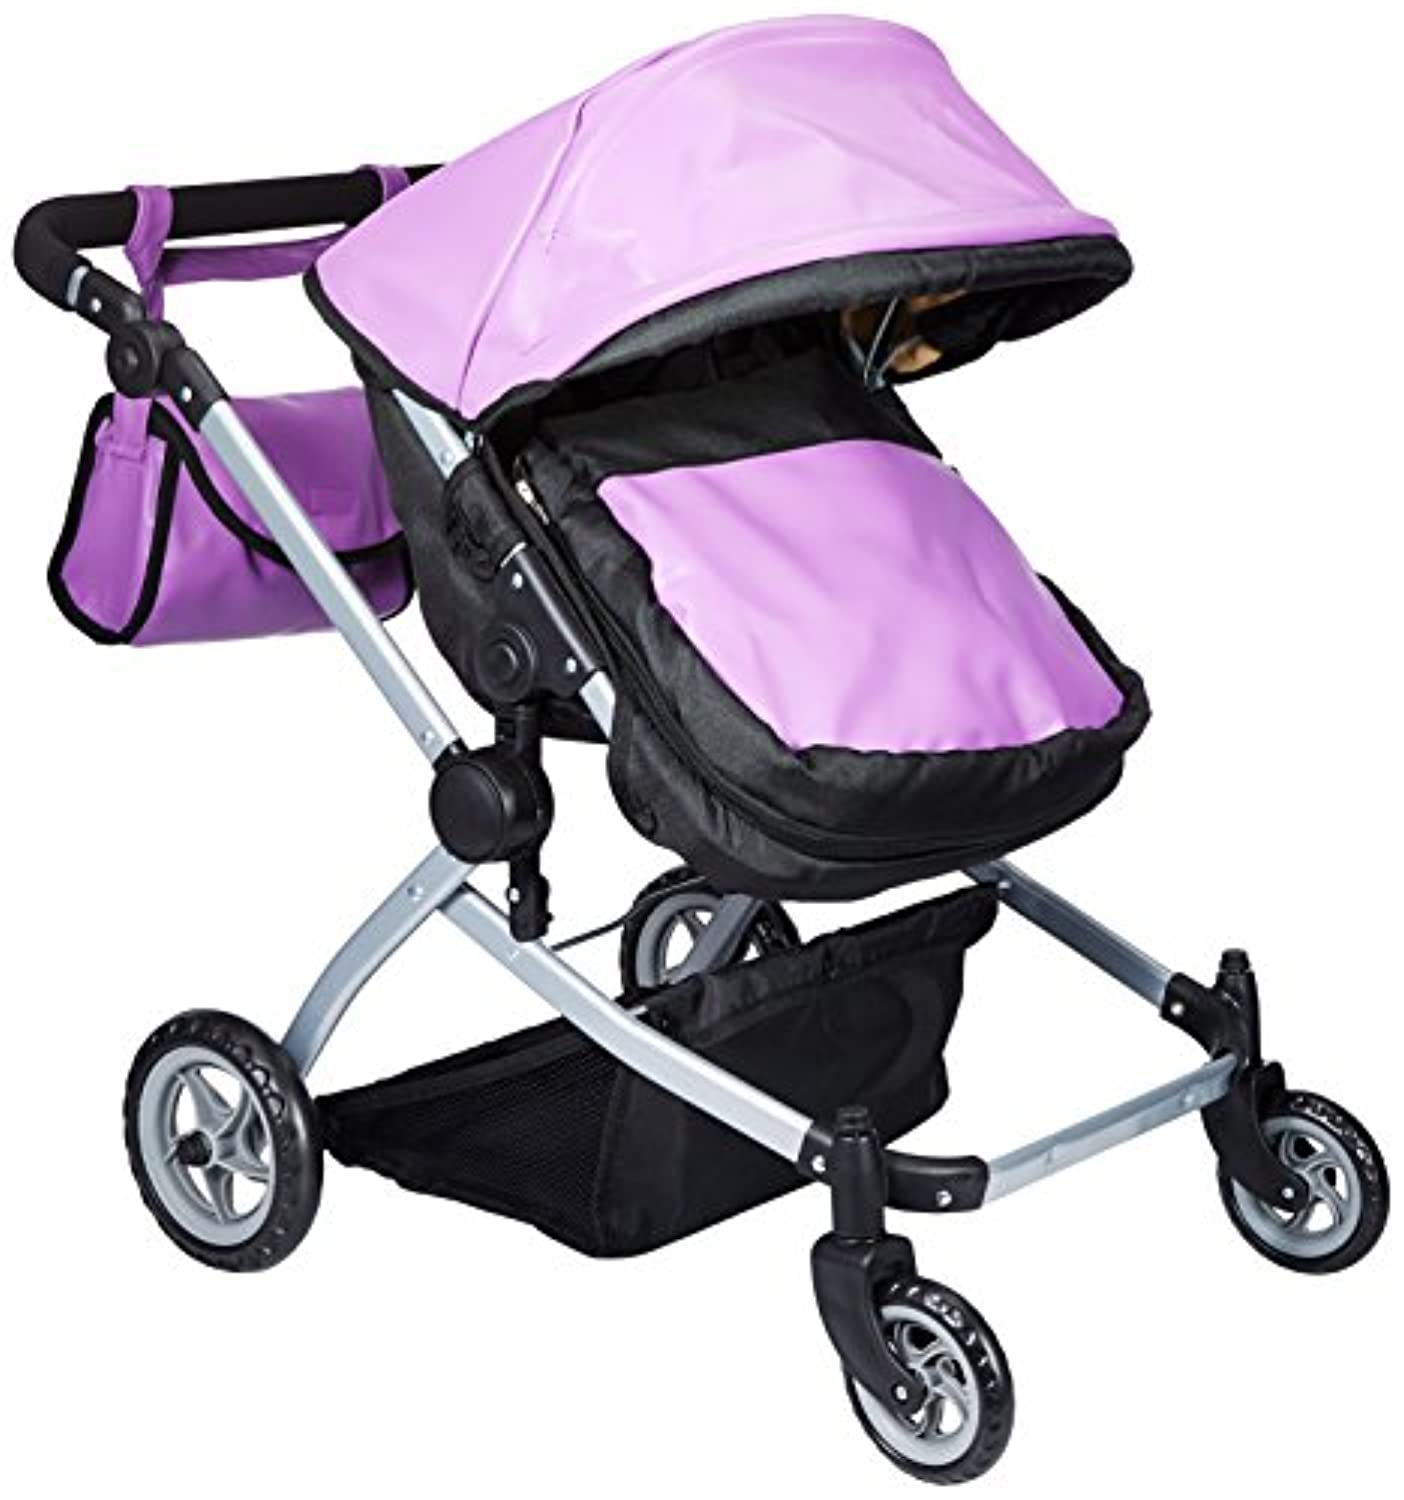 Babyboo Luxury Leather Look Twin Doll Pram/Stroller with Free Carriage (Multi Function View All Photos) - 9651A Purple